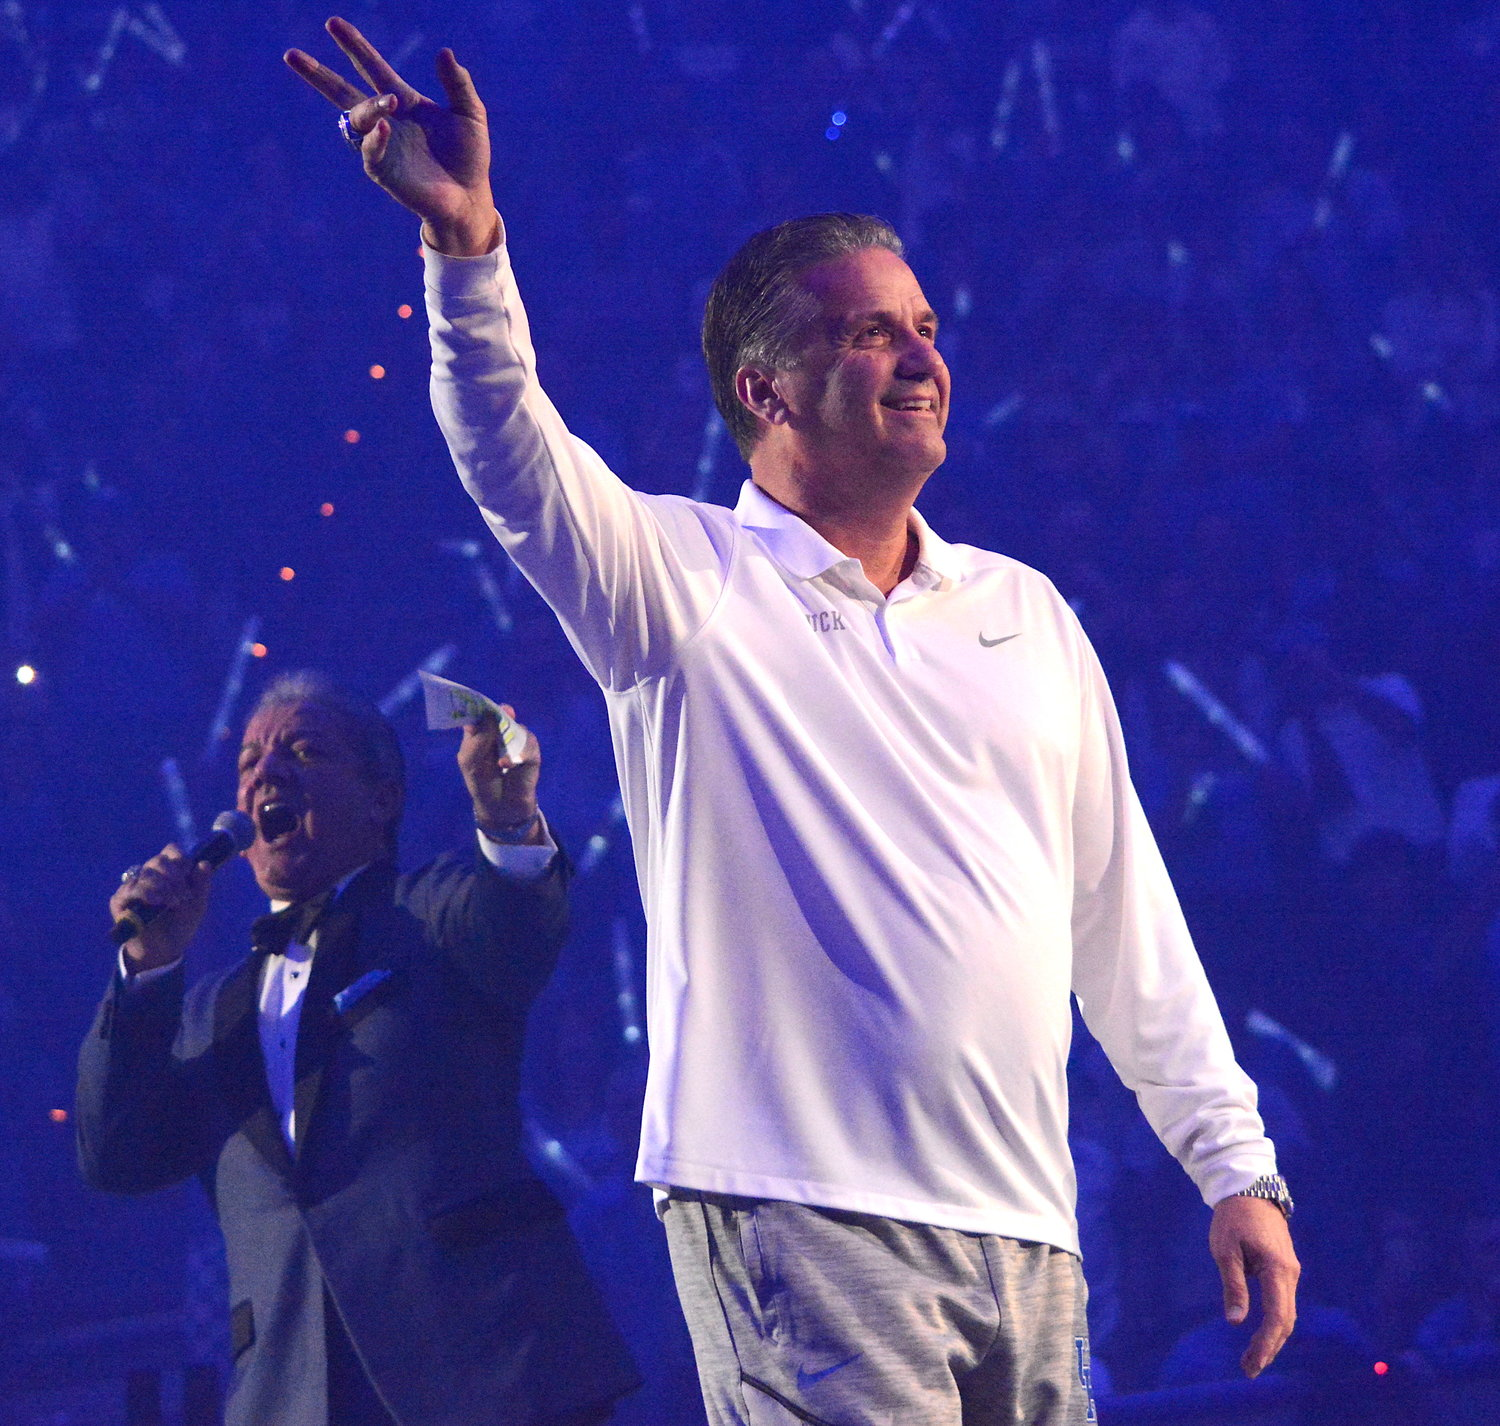 Kentucky coach John Calipari waves to the crown as he is introduced by legendary announcer Bruce Buffer during Big Blue Madness Friday night at Rupp Arena. (Kentucky Today/Keith Taylor)